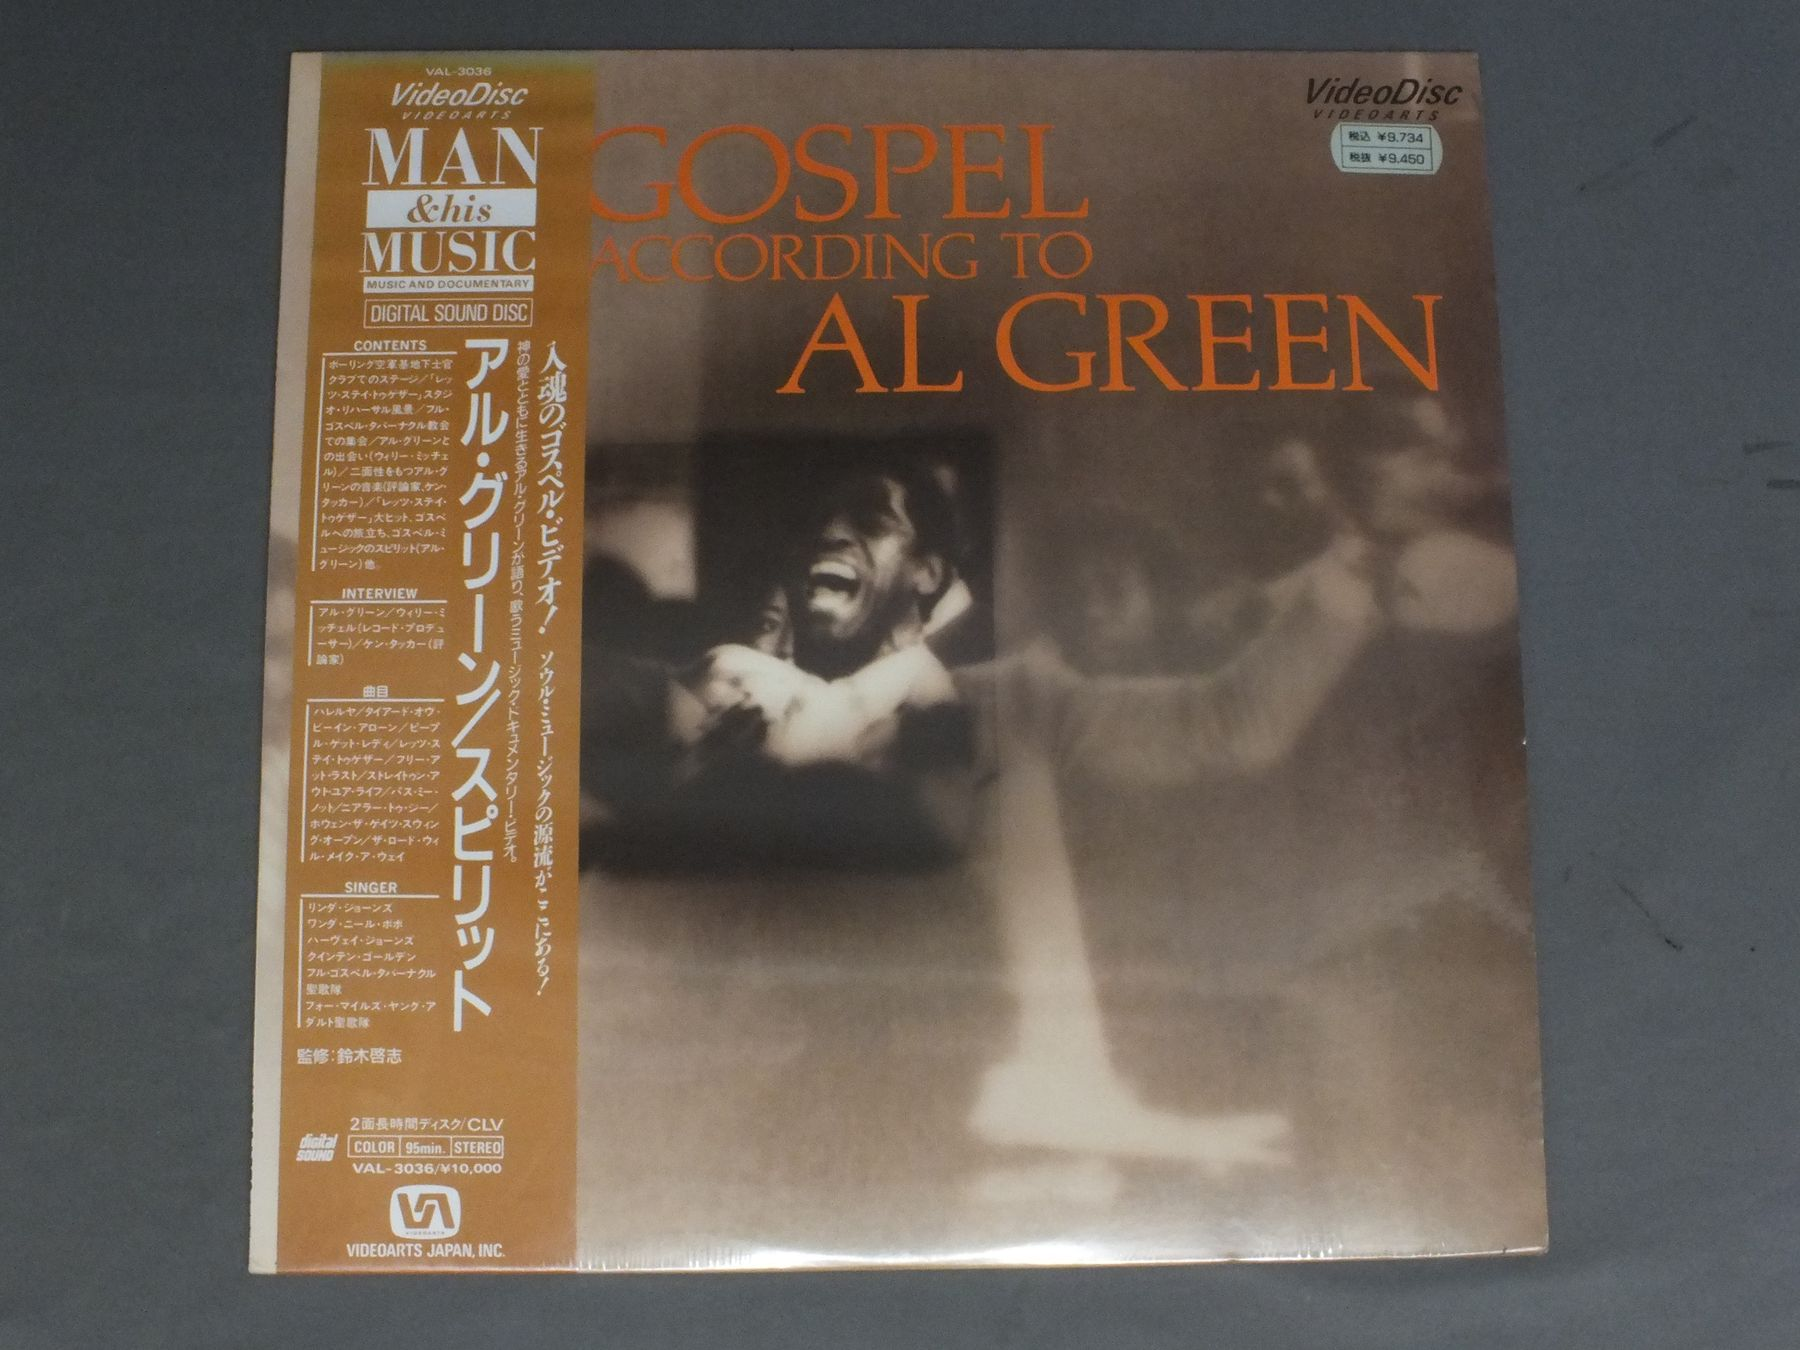 AL GREEN - GOSPEL ACCORDING TO AL GREEN - Laser Disc